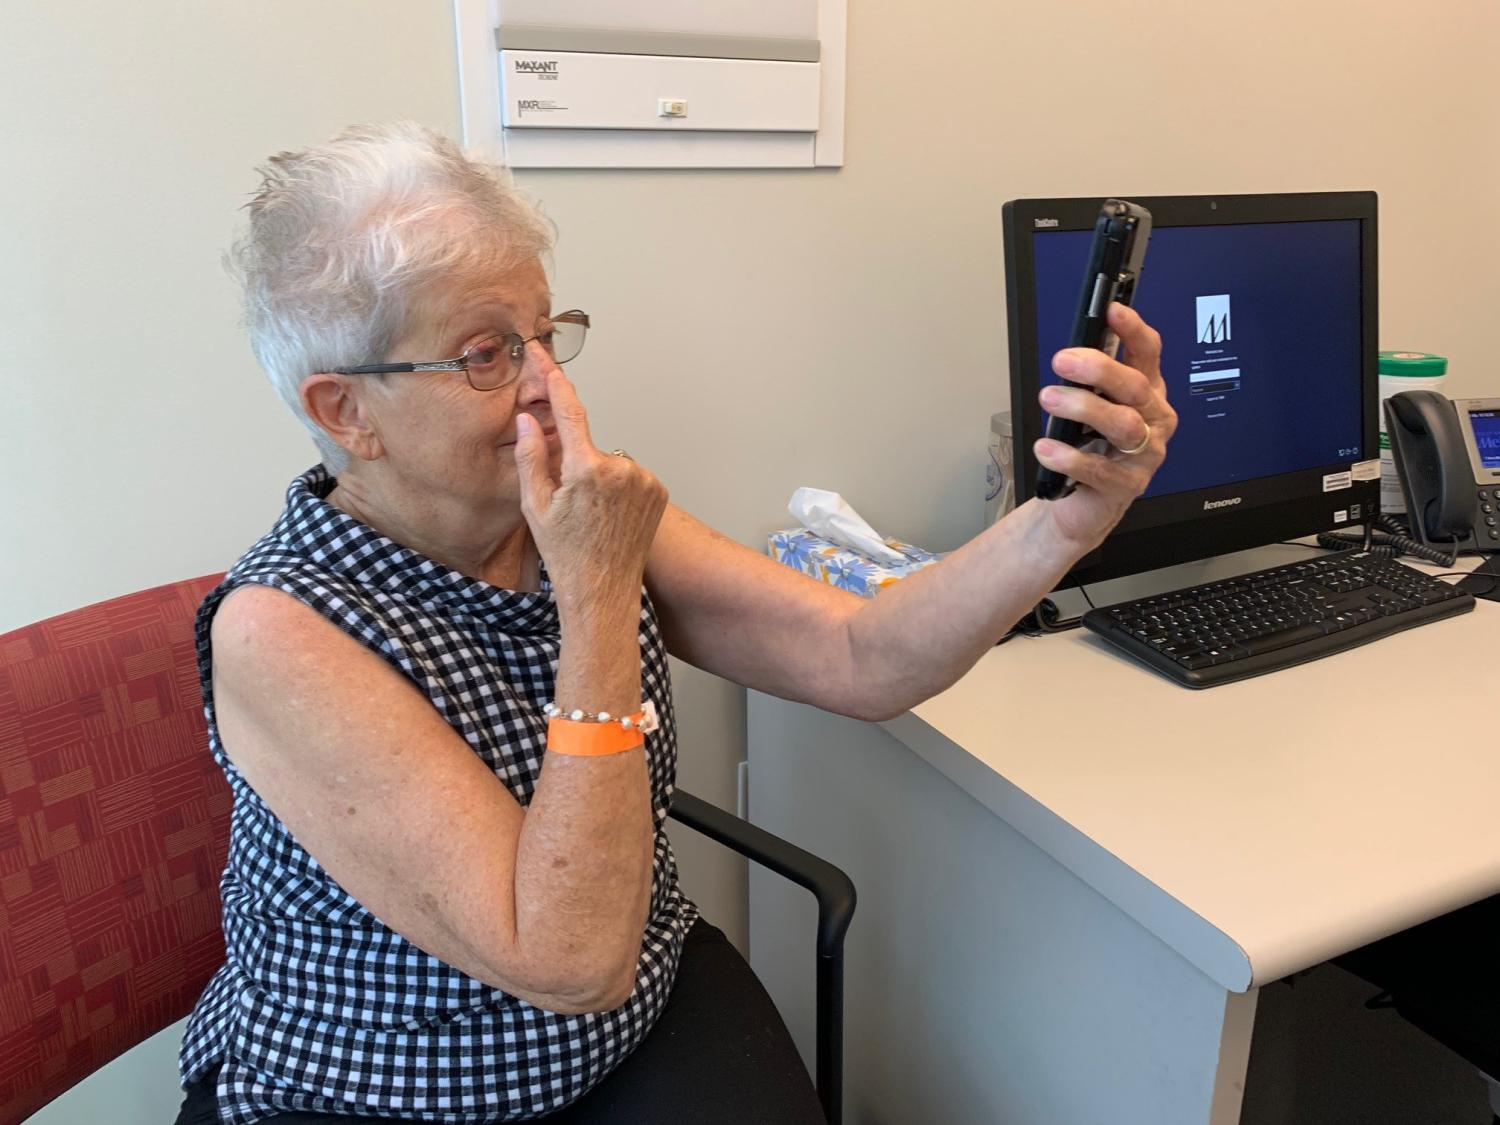 A female patient participates in a video screening test on a smartphone